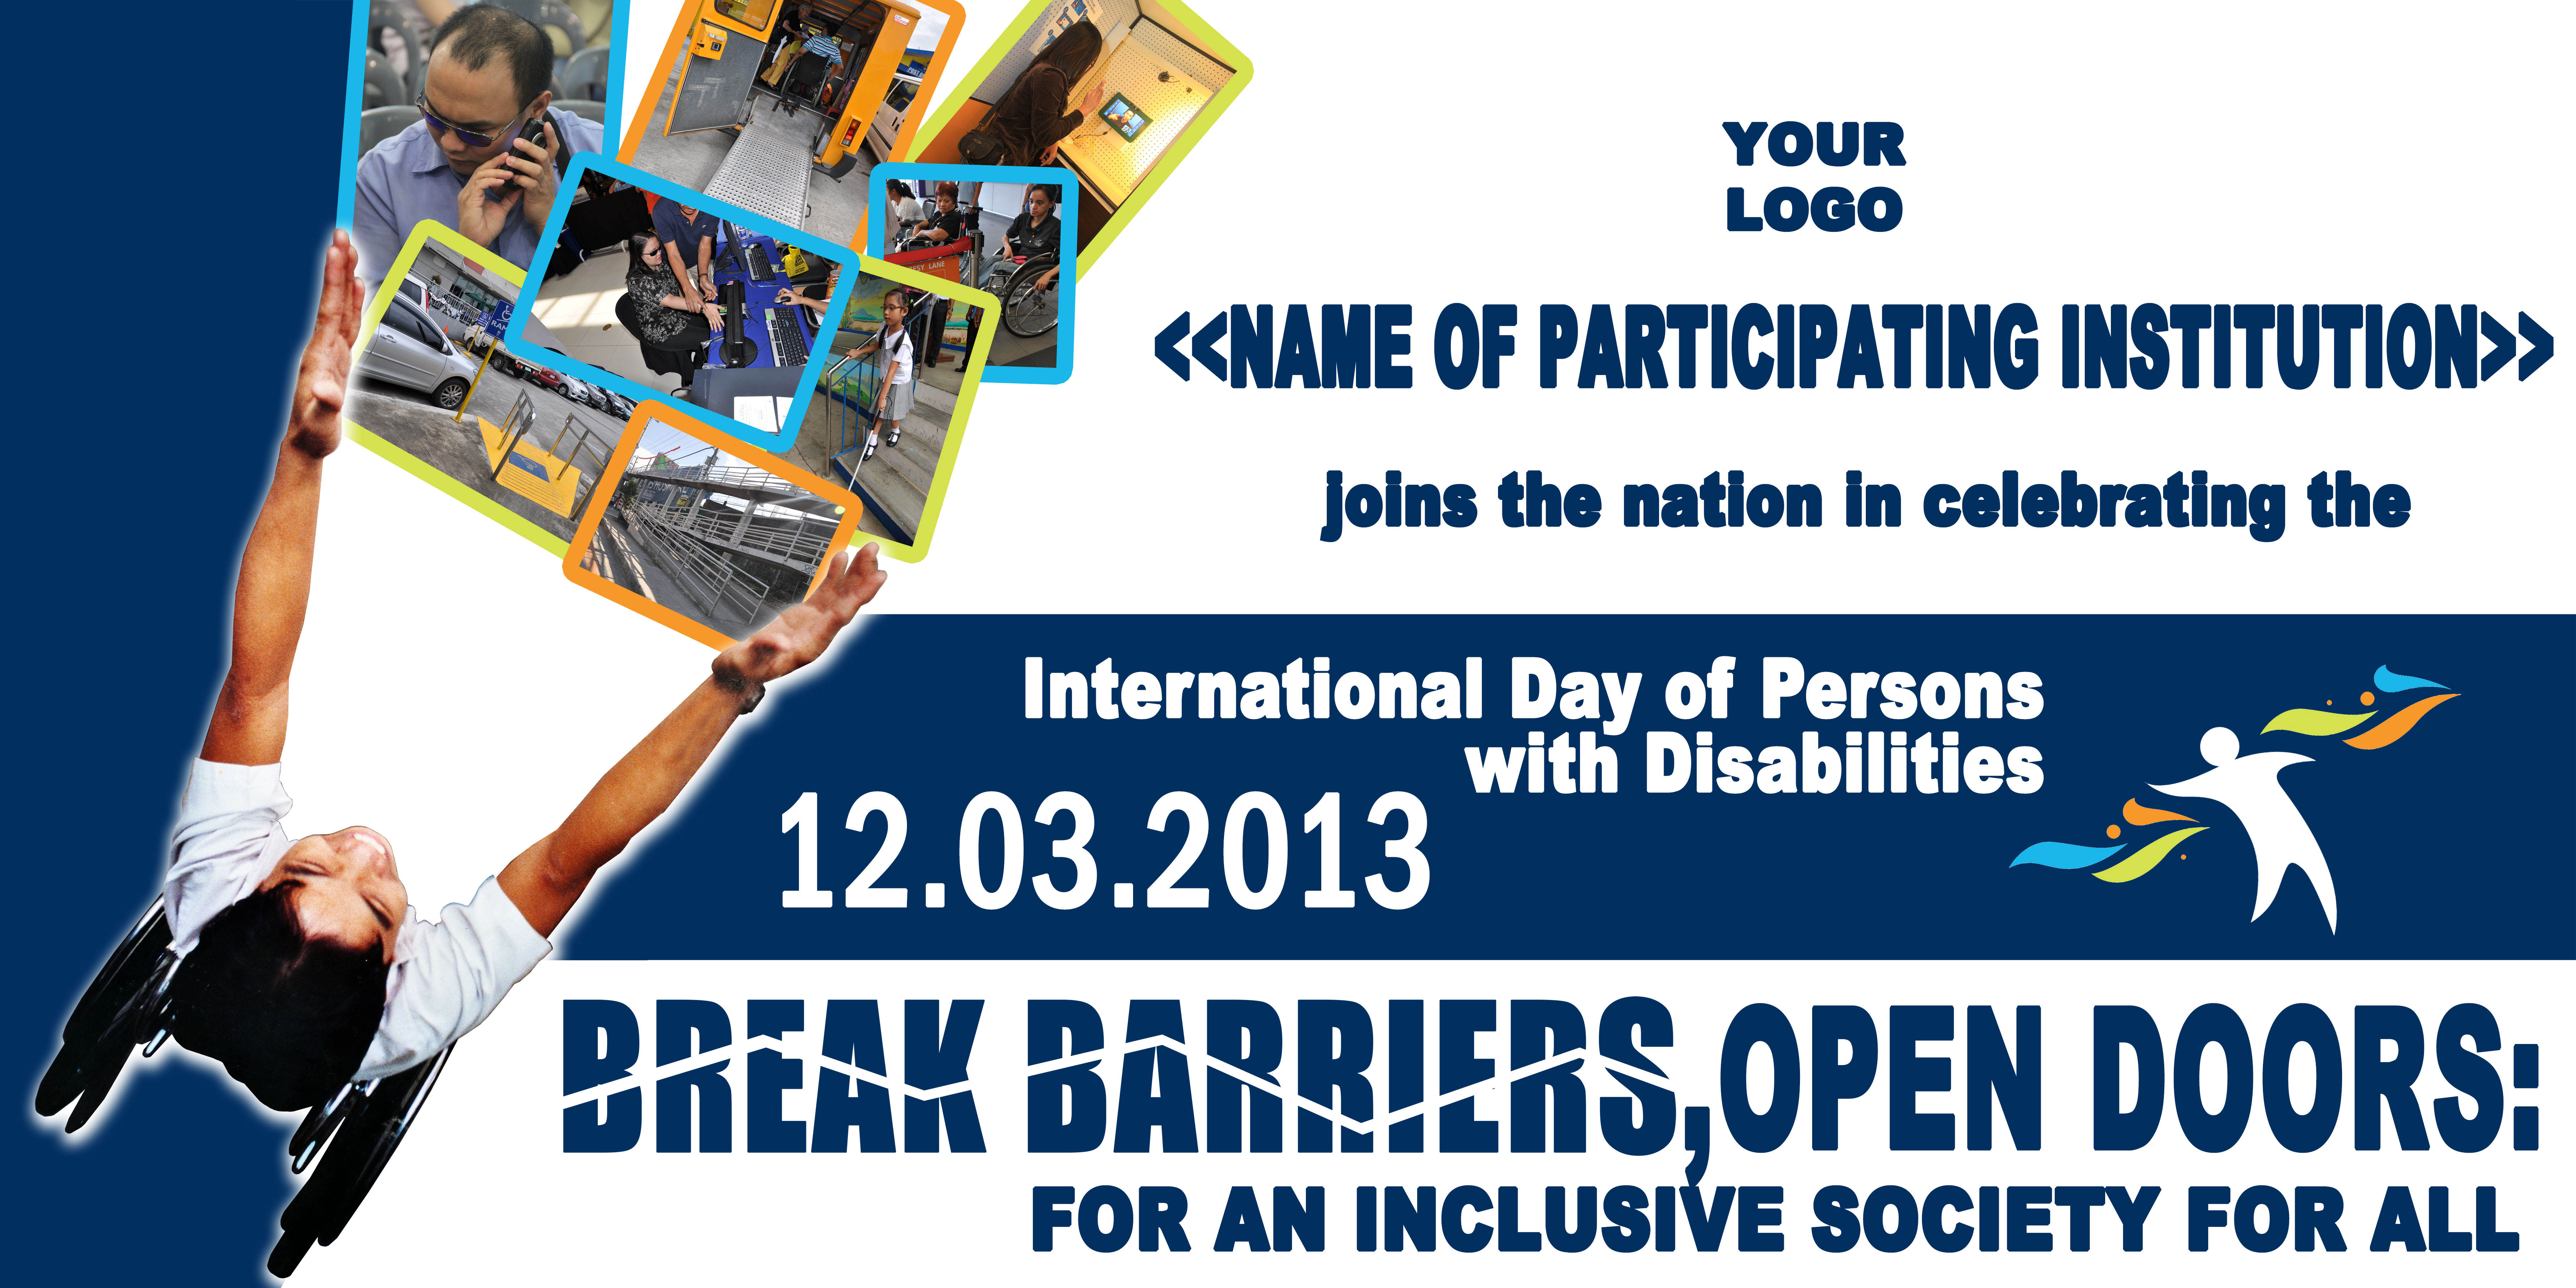 Steamer for the International Day of Persons with Disabilities